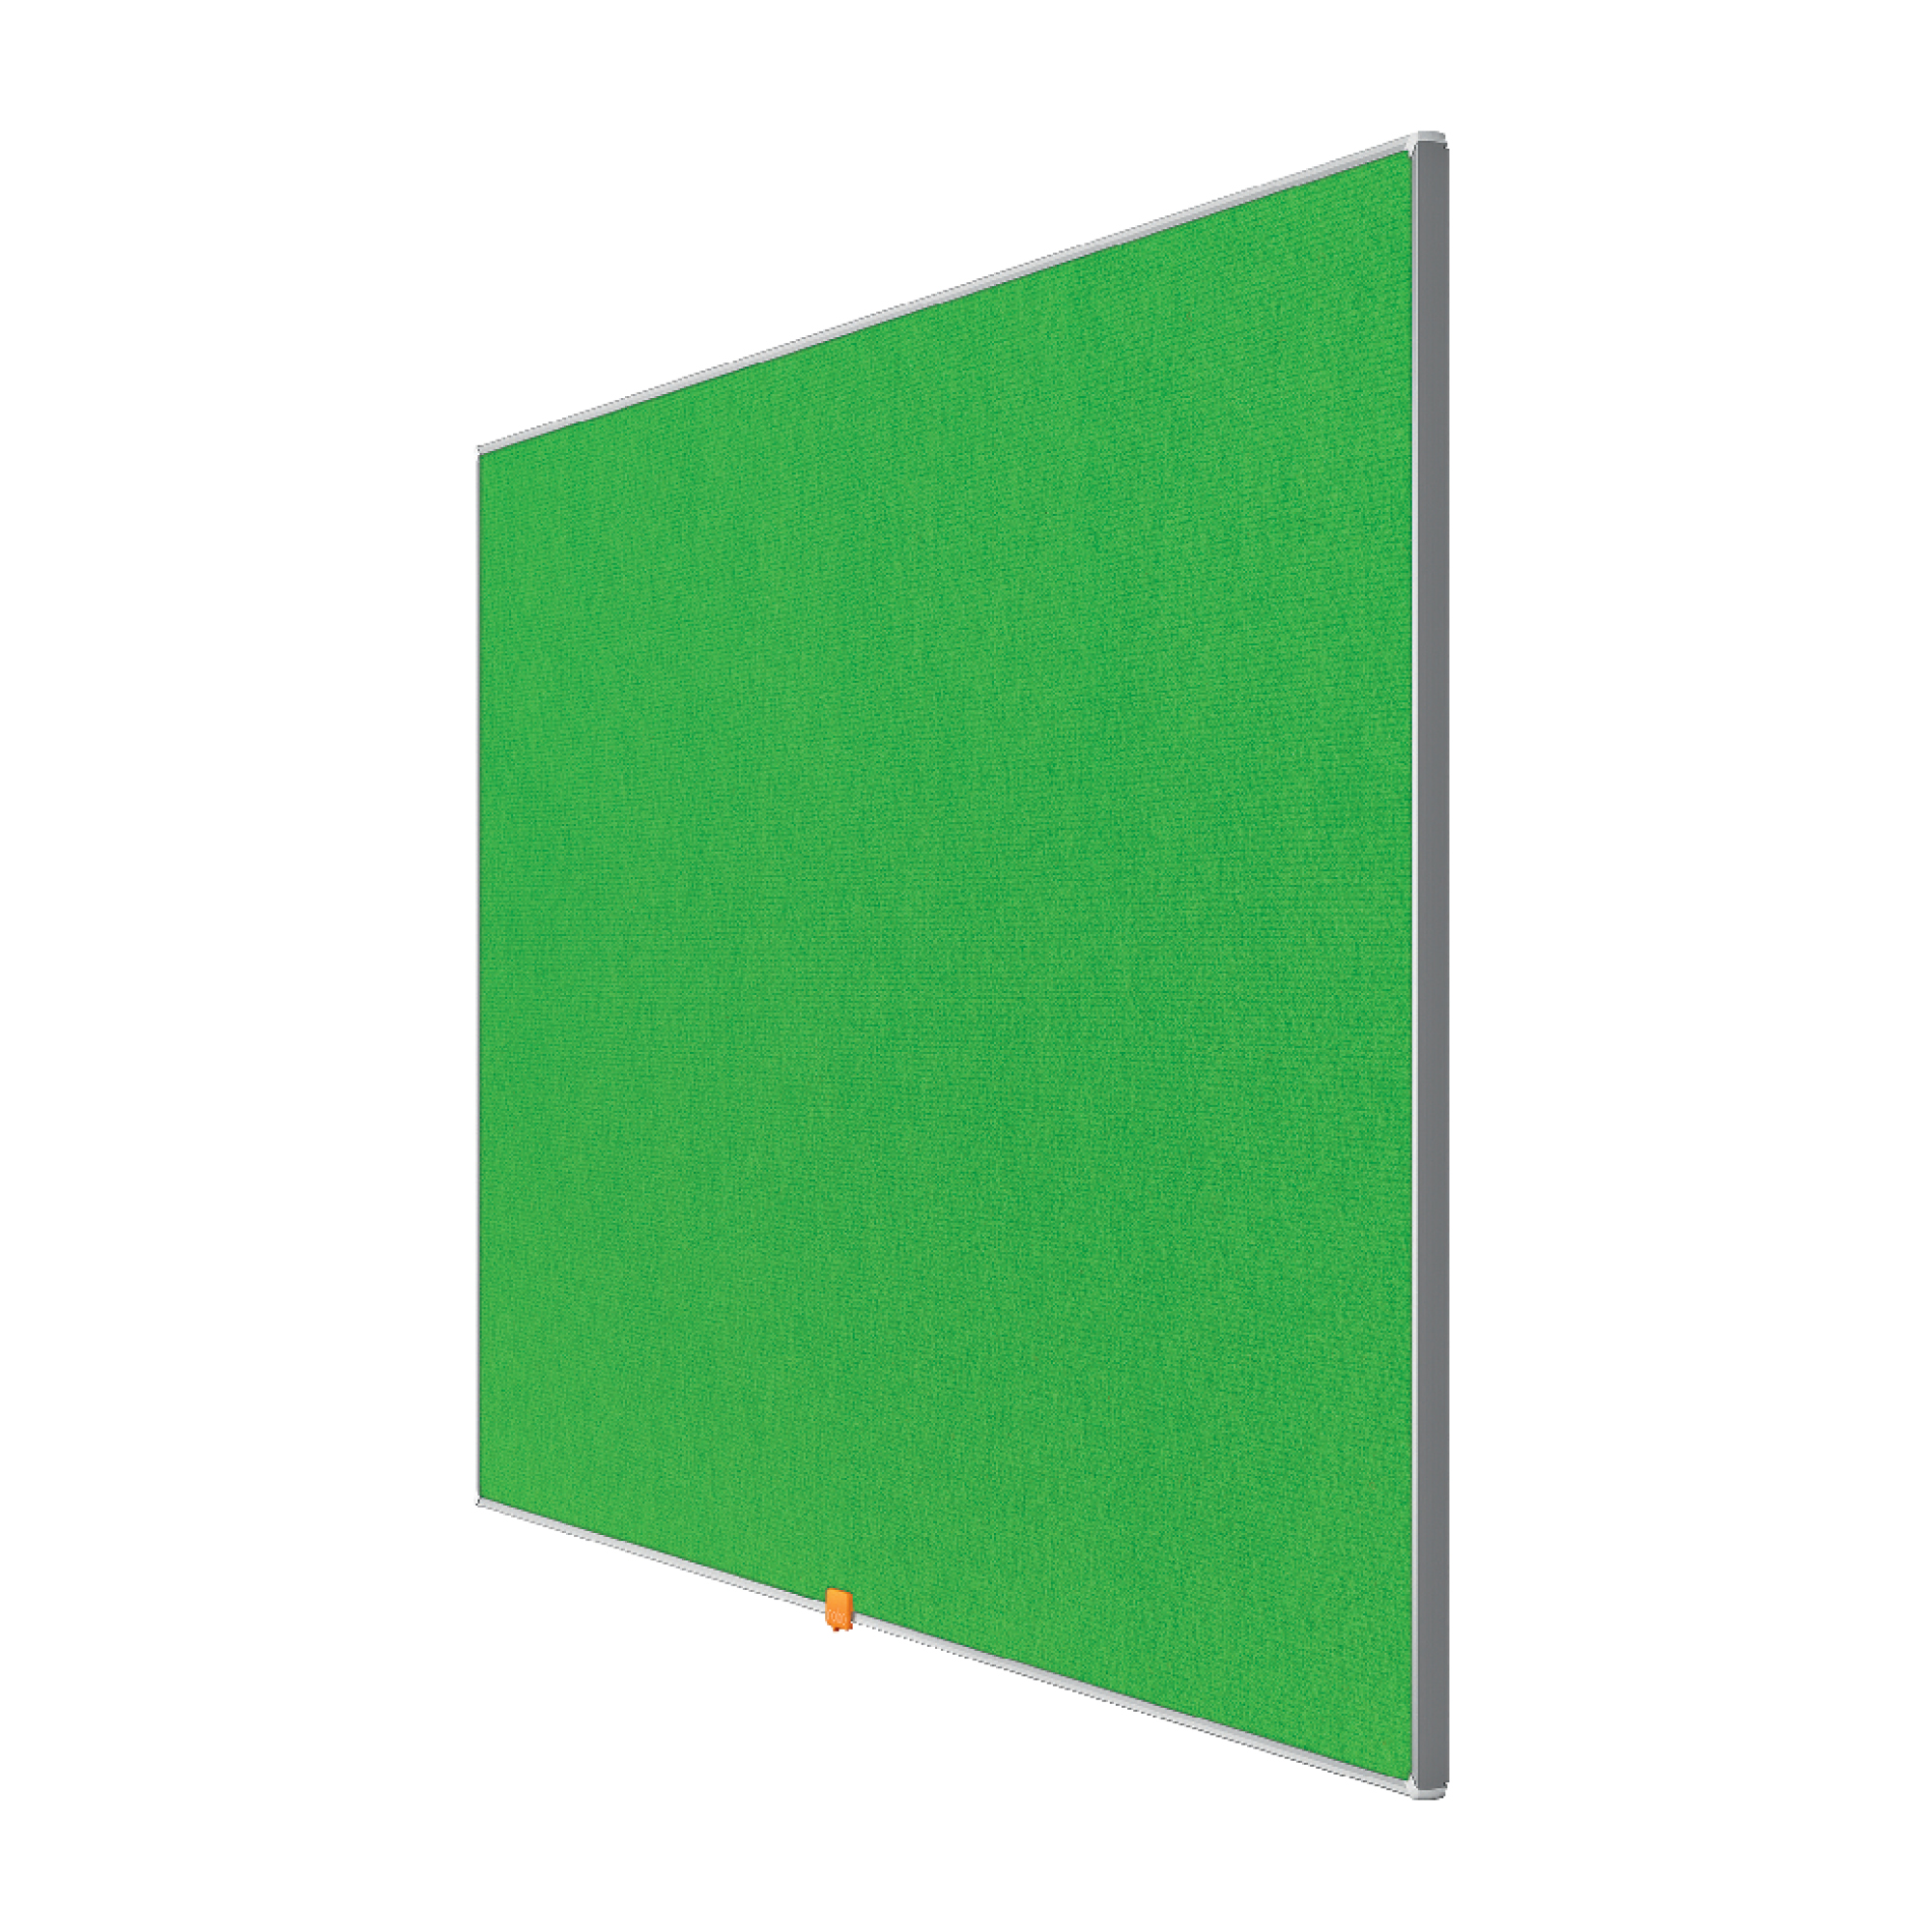 Bulletin boards or accessories Nobo 55 inch Widescreen Felt Board 1220x690mm Green Ref 1905316